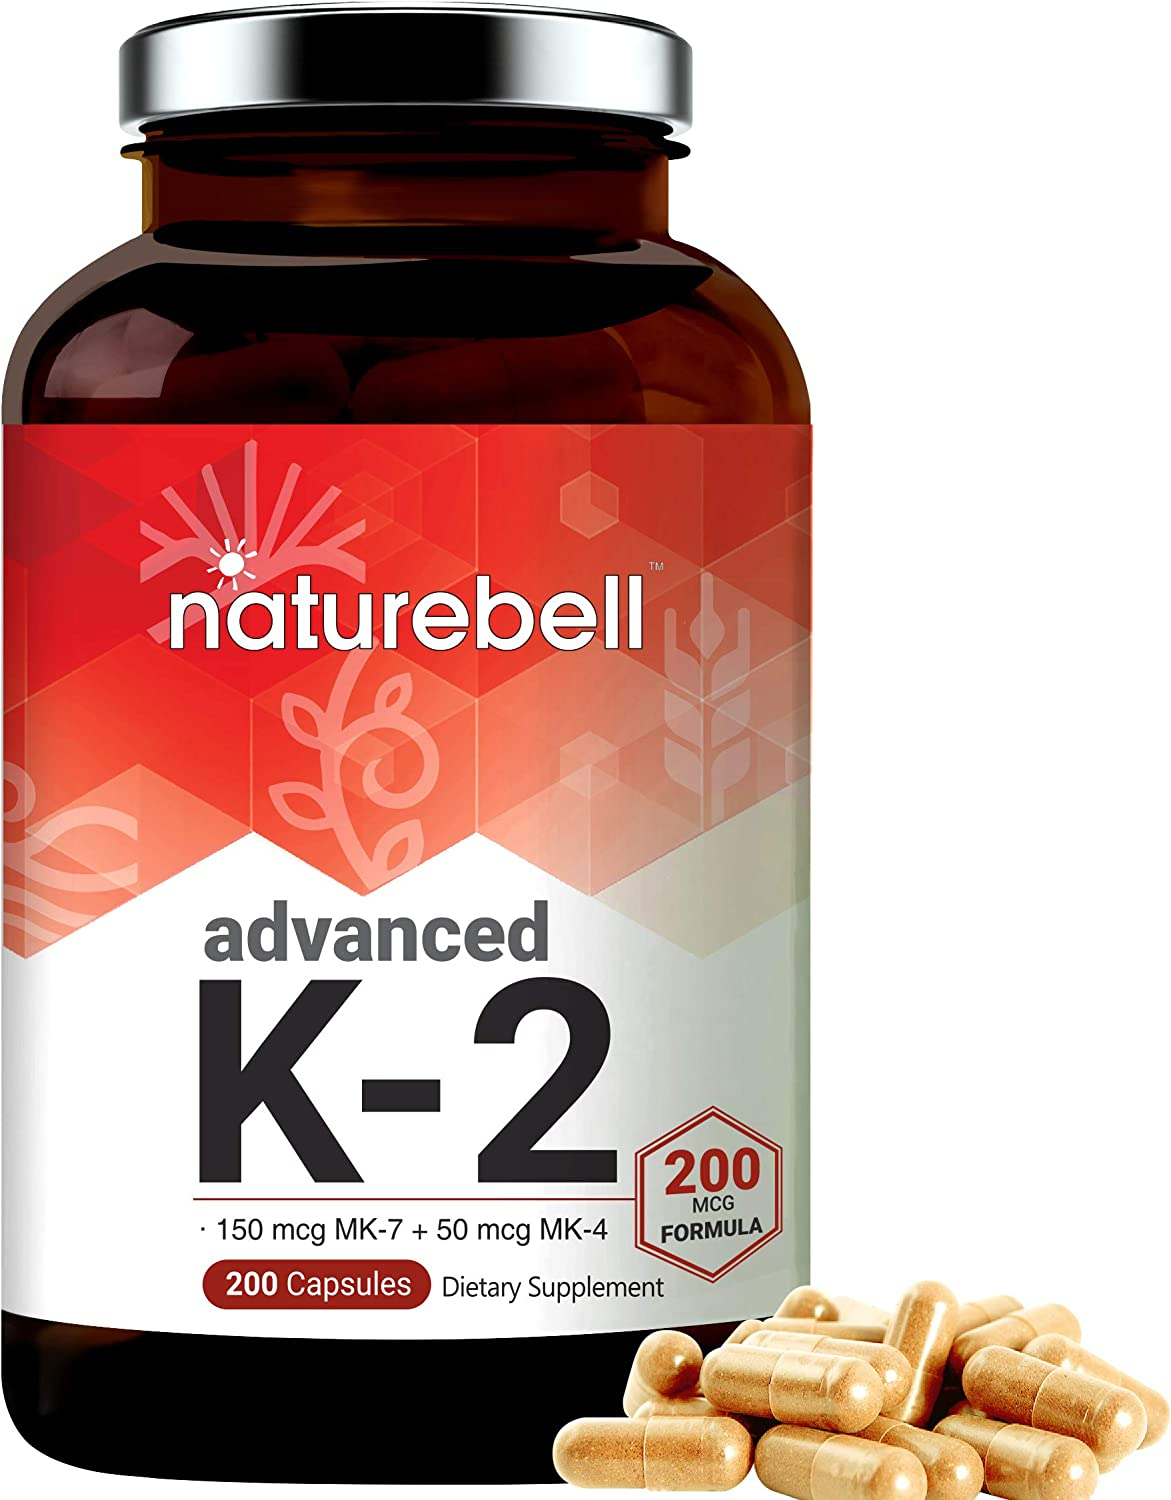 Advanced Vitamin K2 Supplement with MK-7 and MK-4, 200 mcg, 200 Capsules, Best Joint Health and Heart Health Supplement, Non-GMO and Made in USA